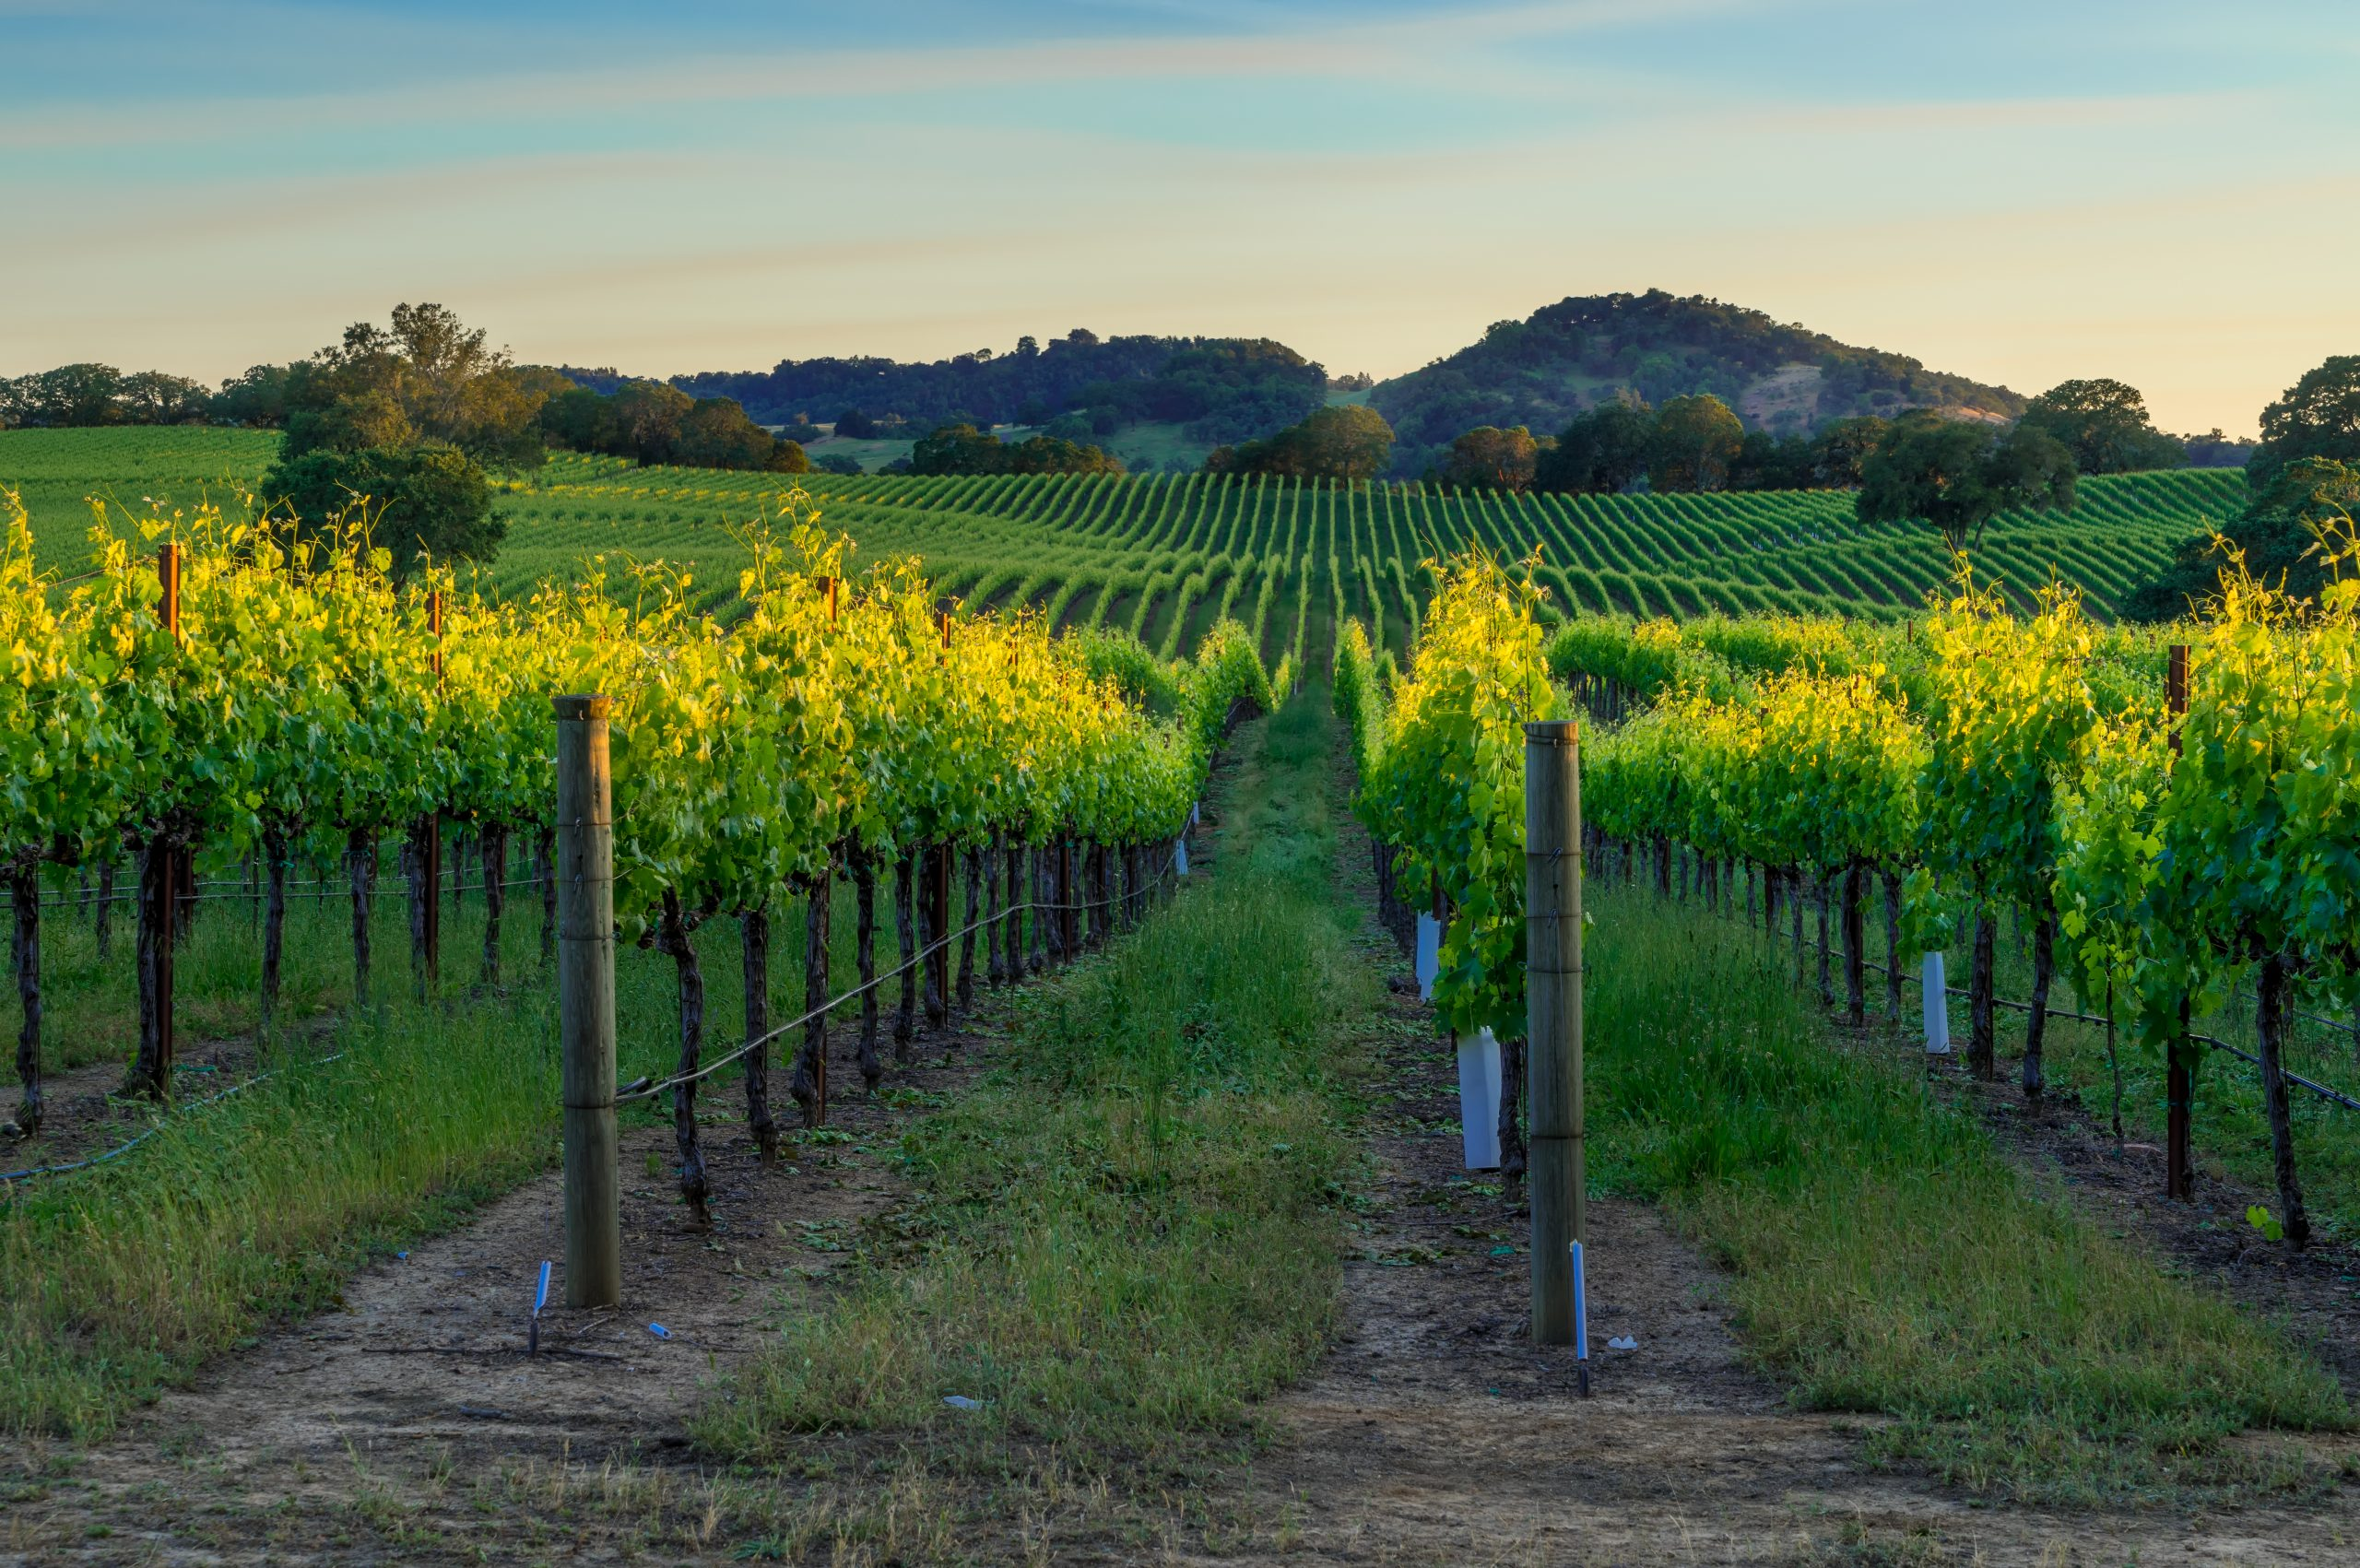 Vineyards in Napa Valley: Former AI boss makes roots in Napa Valley